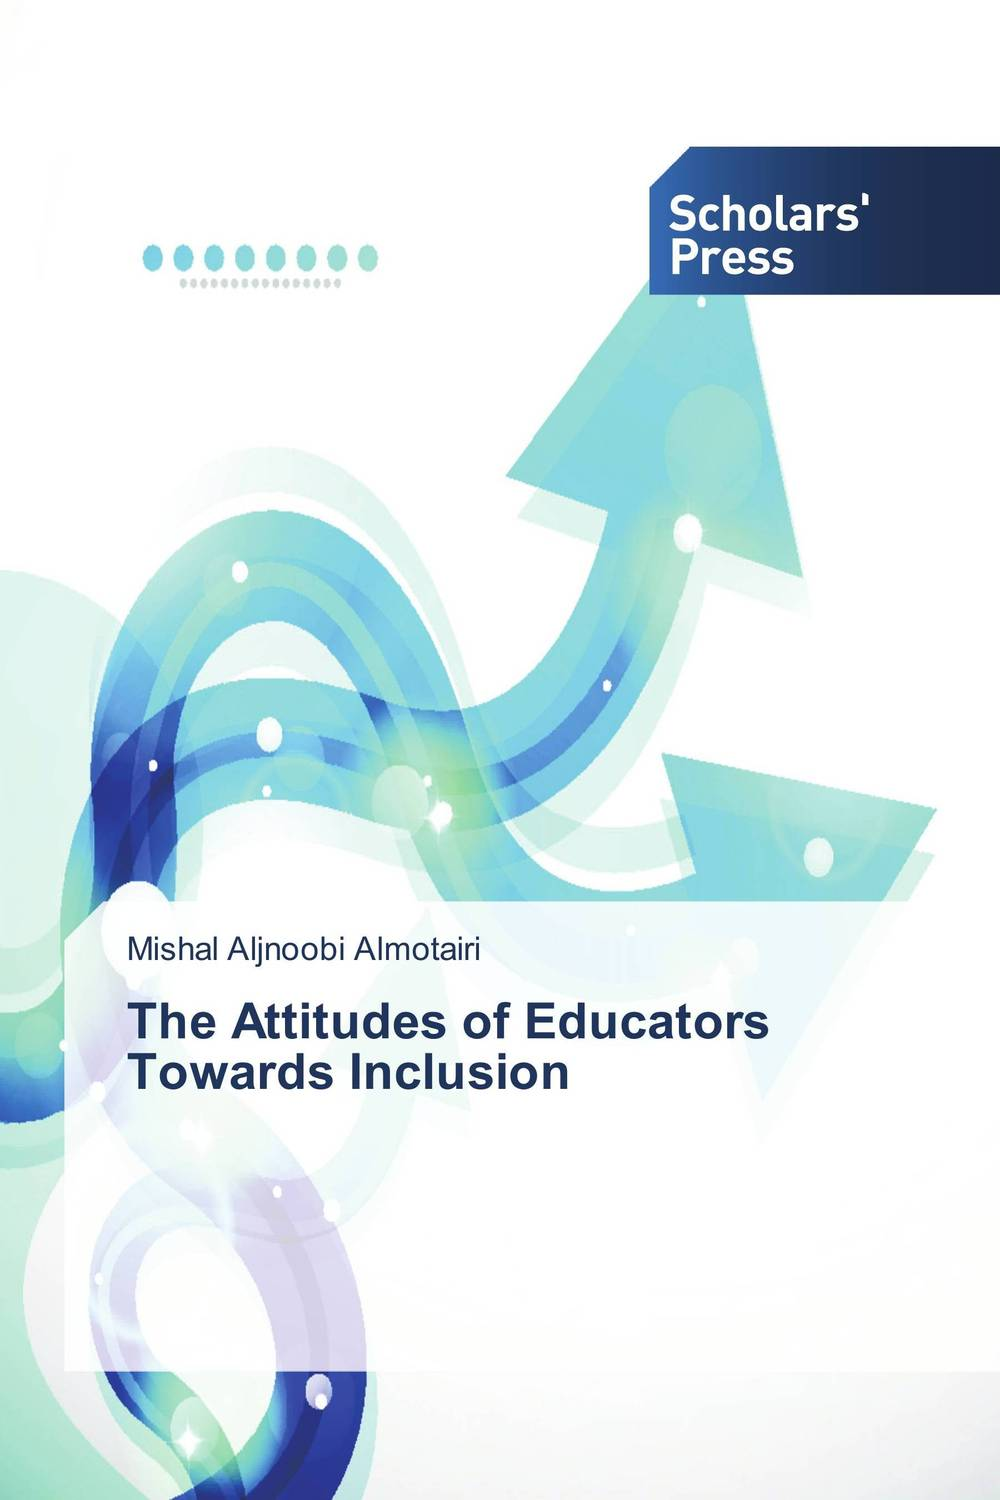 The Attitudes of Educators Towards Inclusion